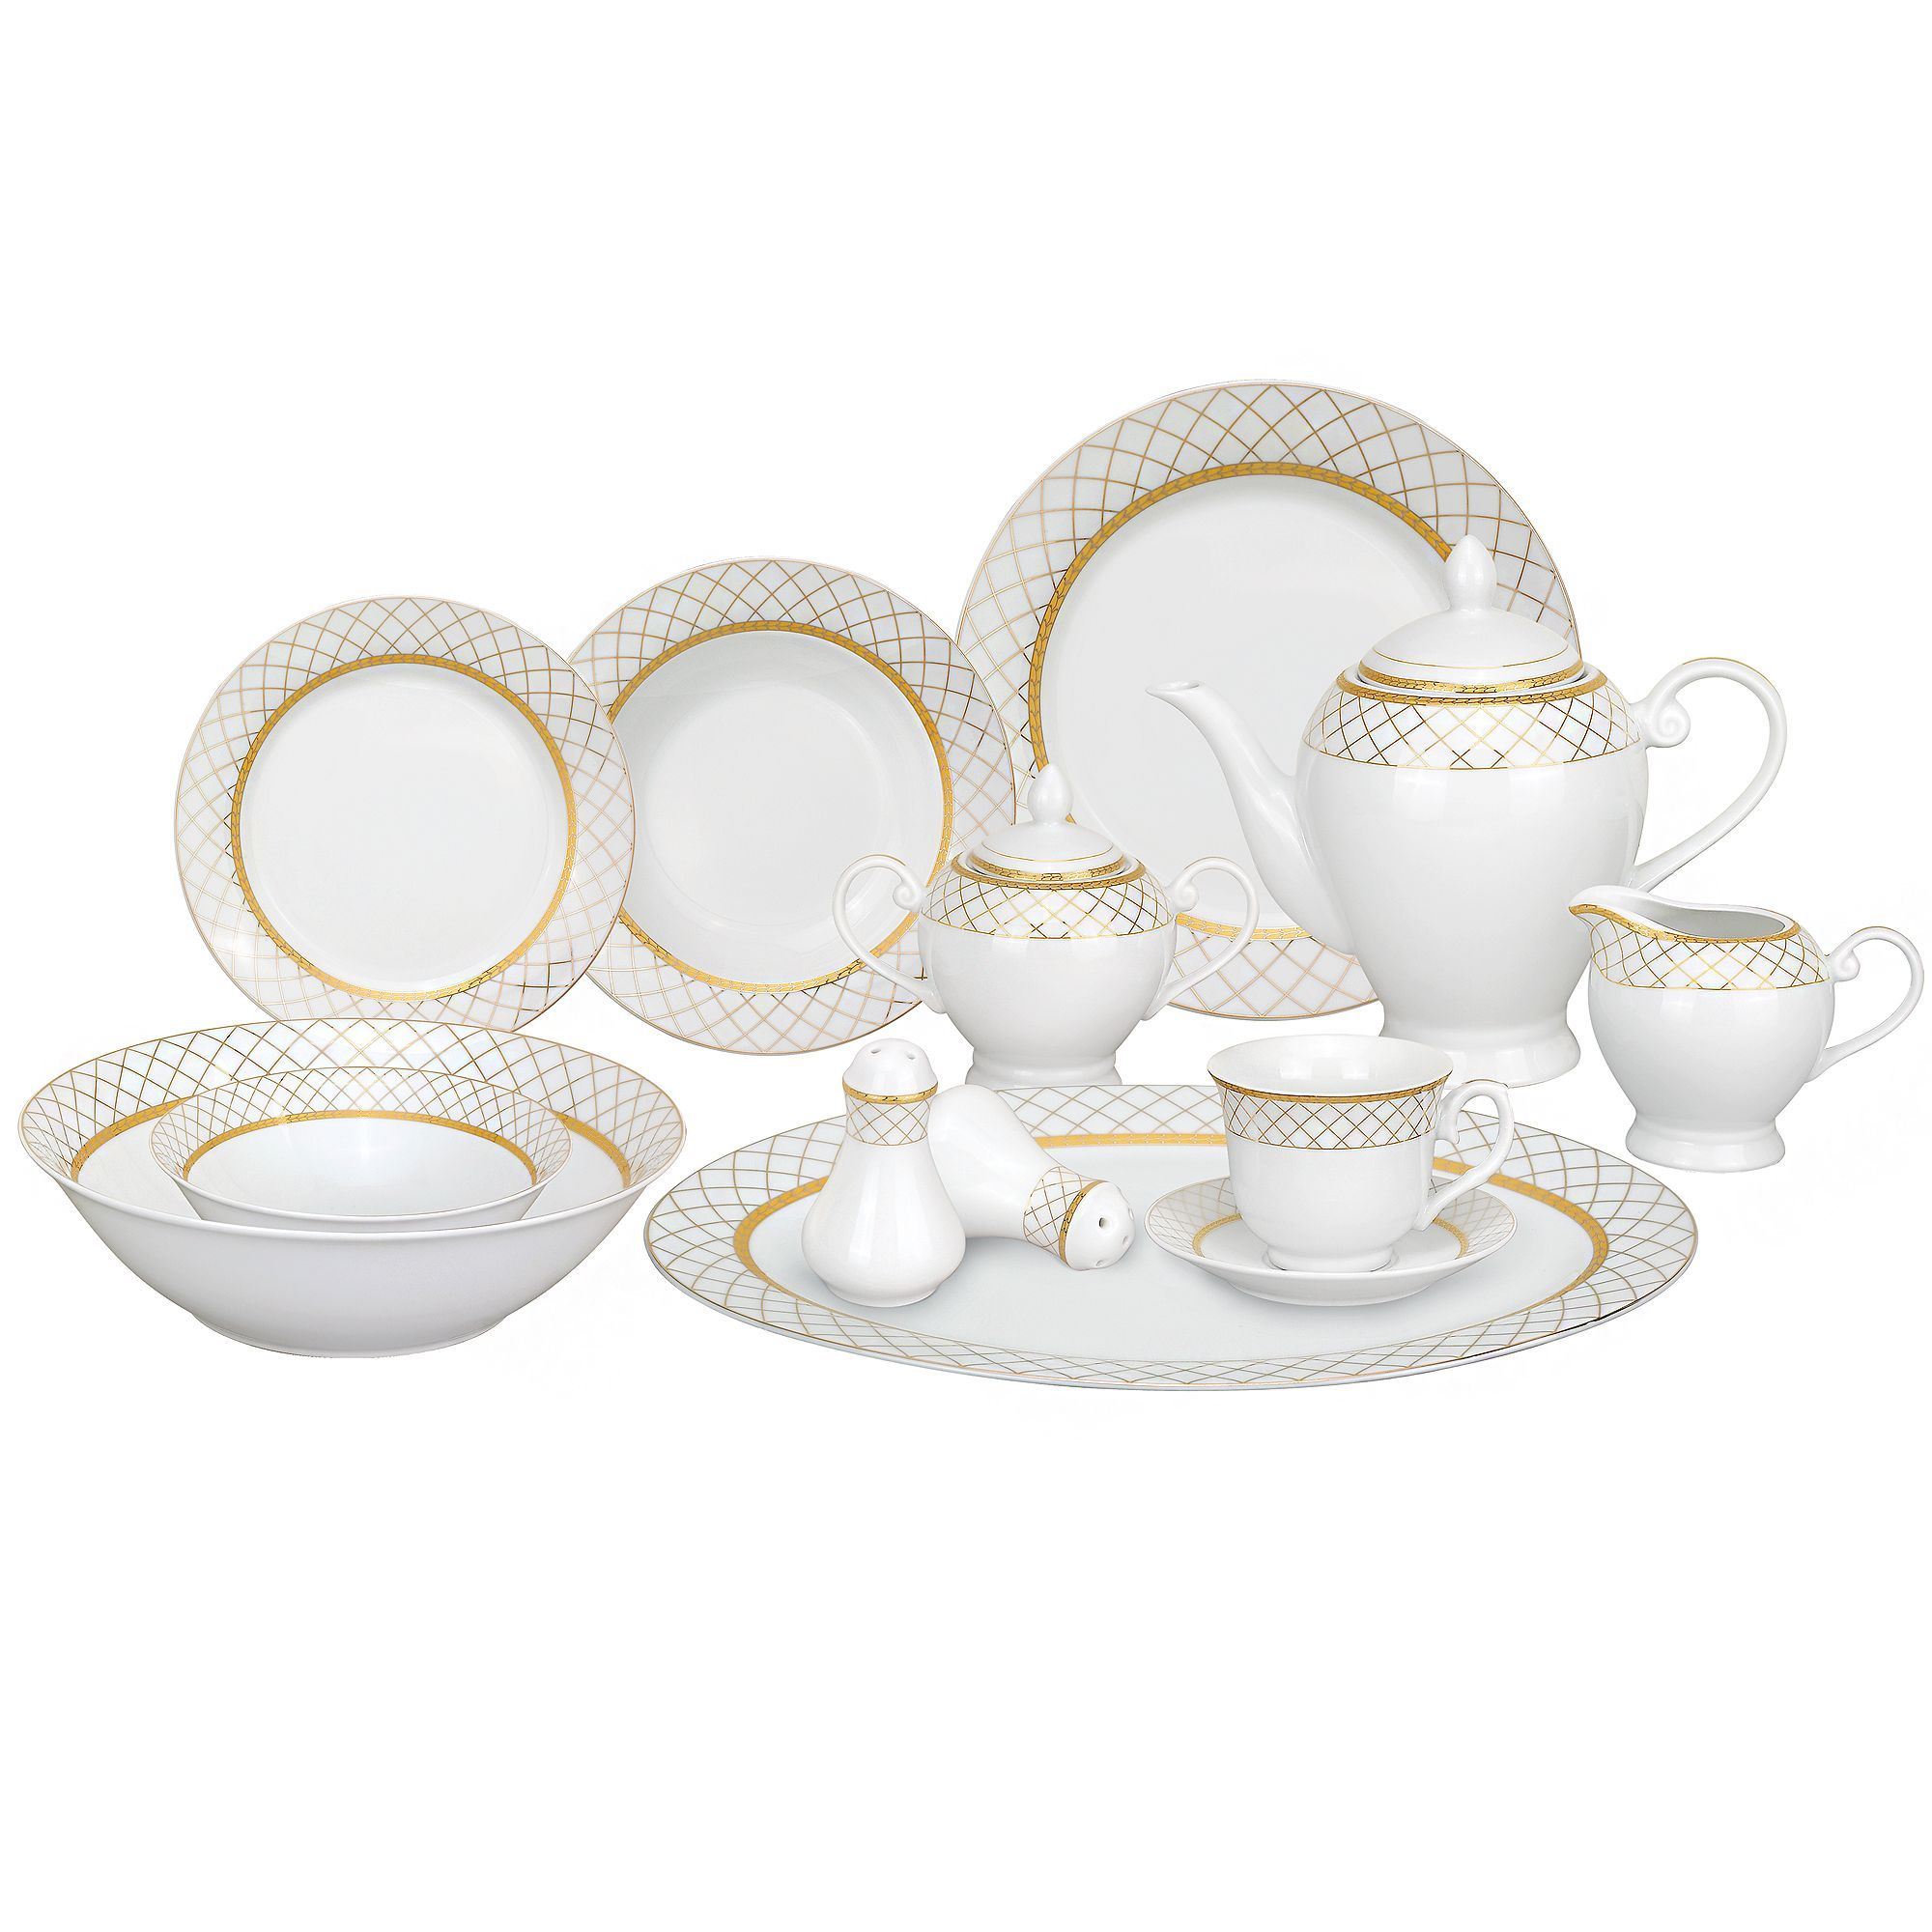 Porcelain  sc 1 st  Pinterest & Lorren Home Trends 57-piece Porcelain Gold Accent Dinnerware Set by ...